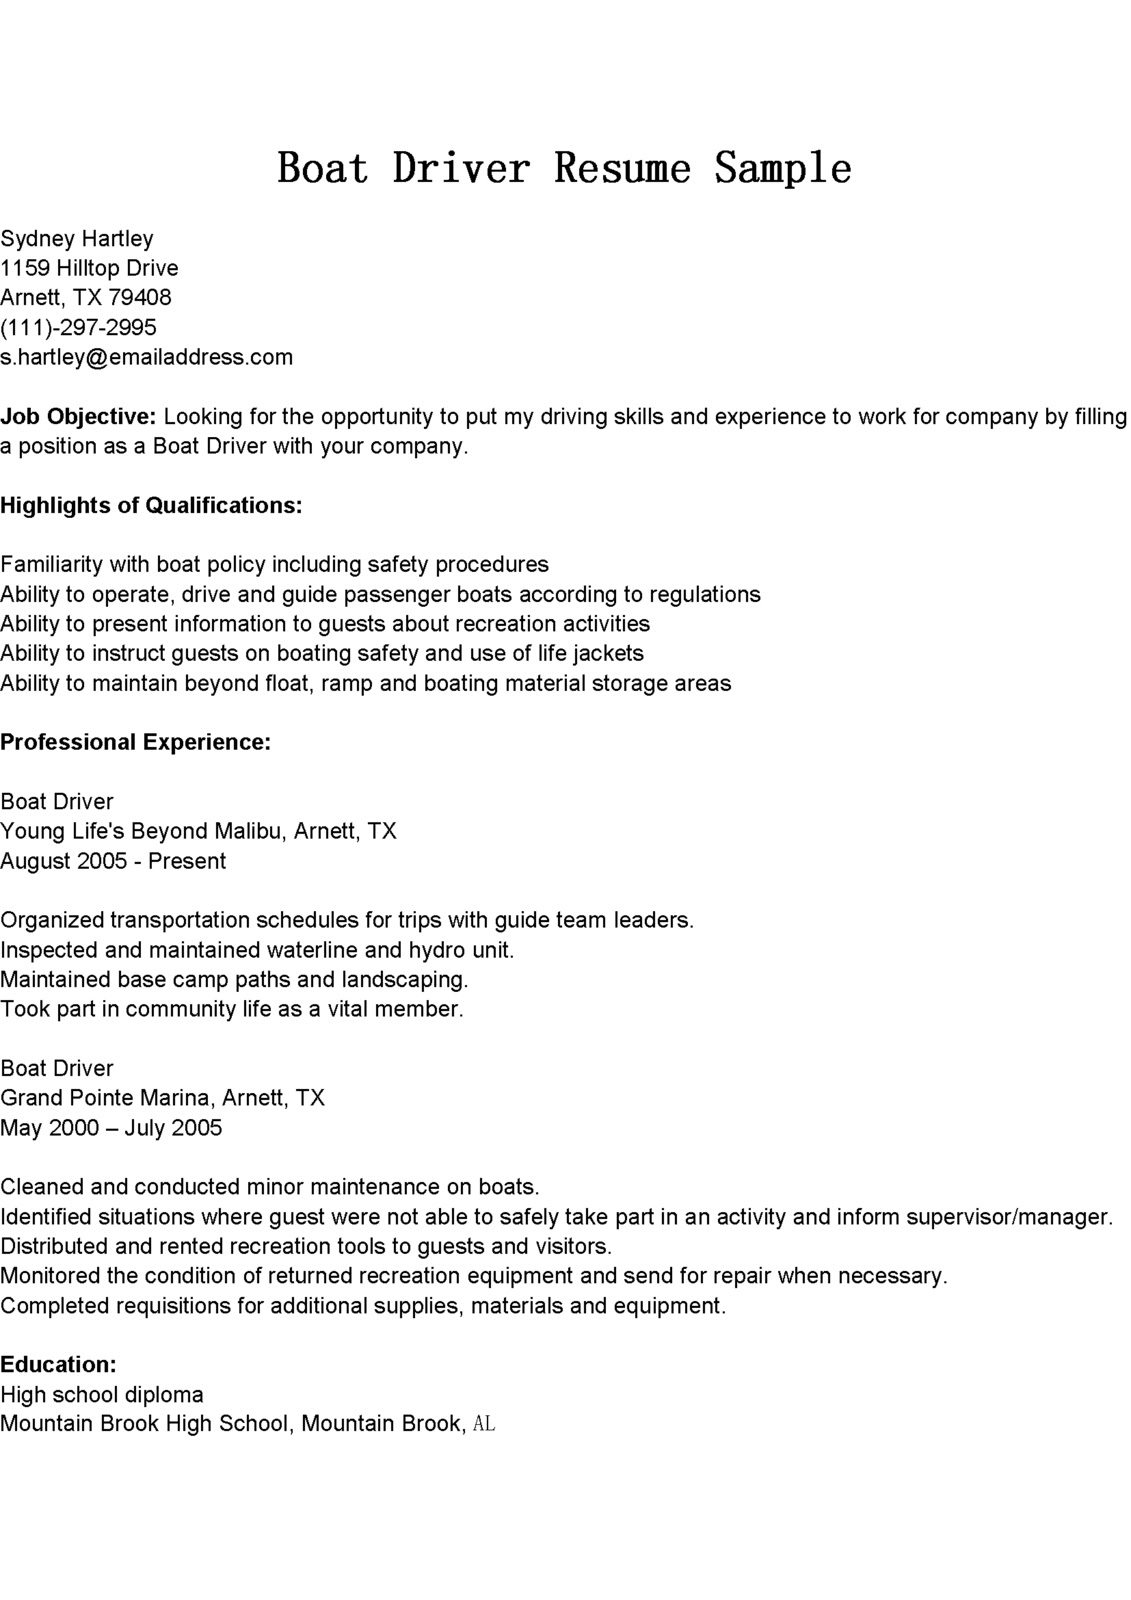 driver resumes boat driver resume sample share friends and family and sp the joy